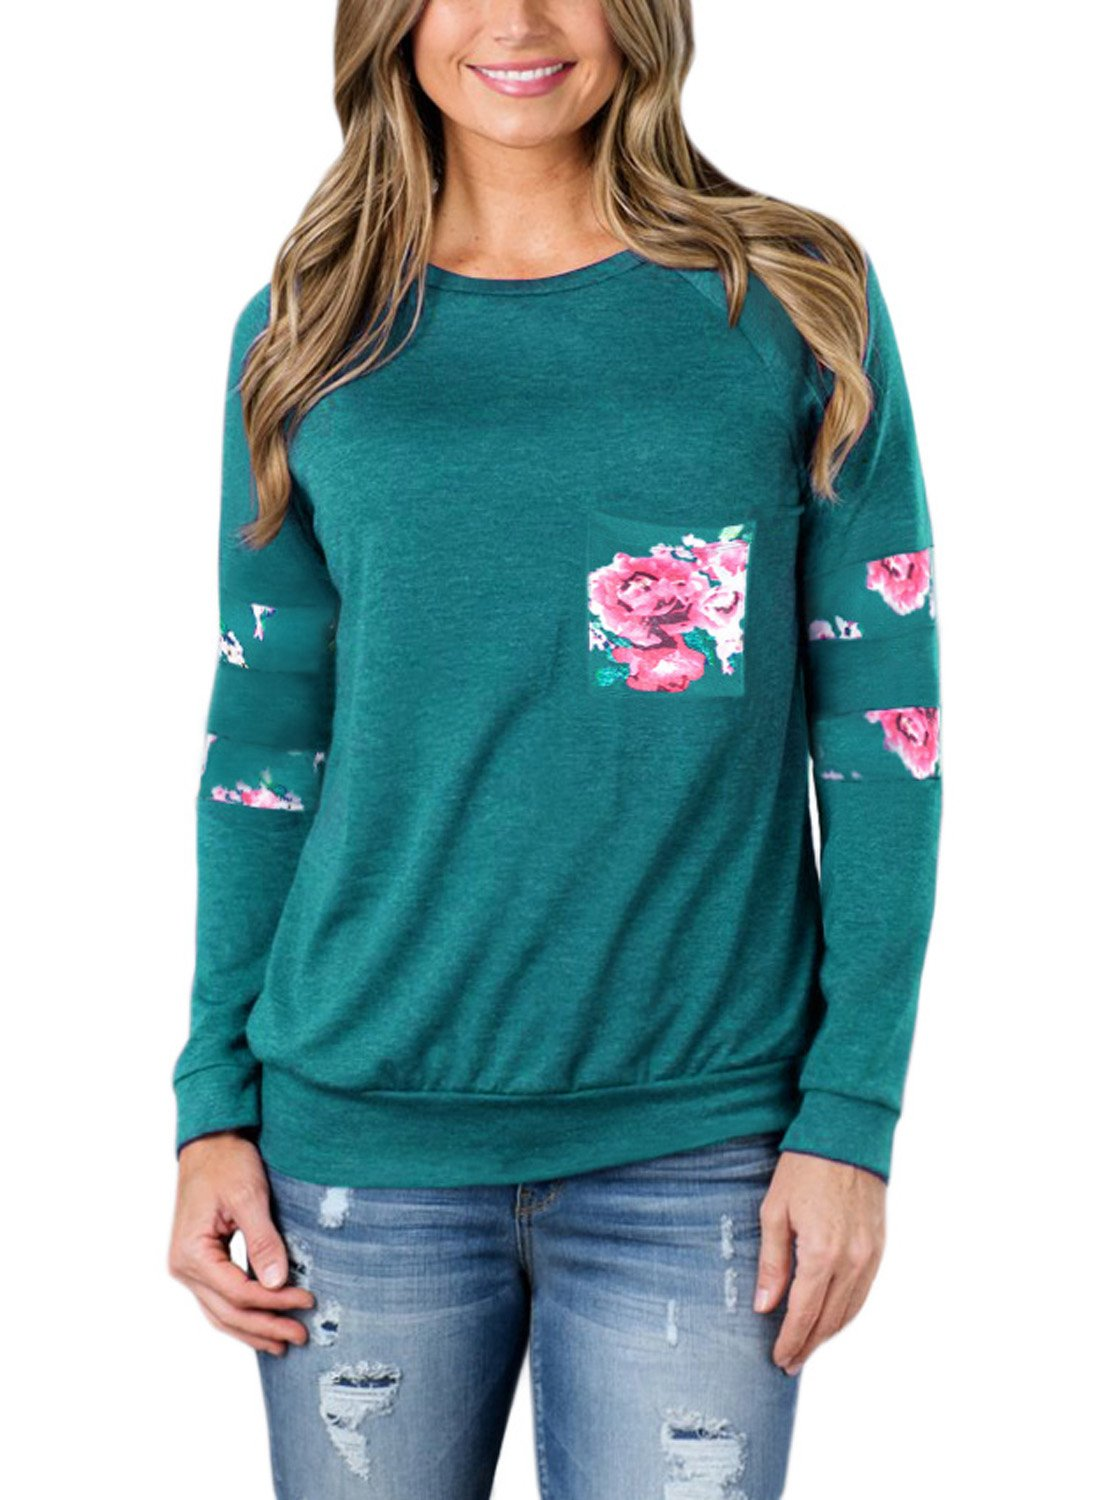 Dearlovers Womens Plus Size Sweatshirts Casual Long Sleeve Sweatshirt Tops and Blouses Green XXL